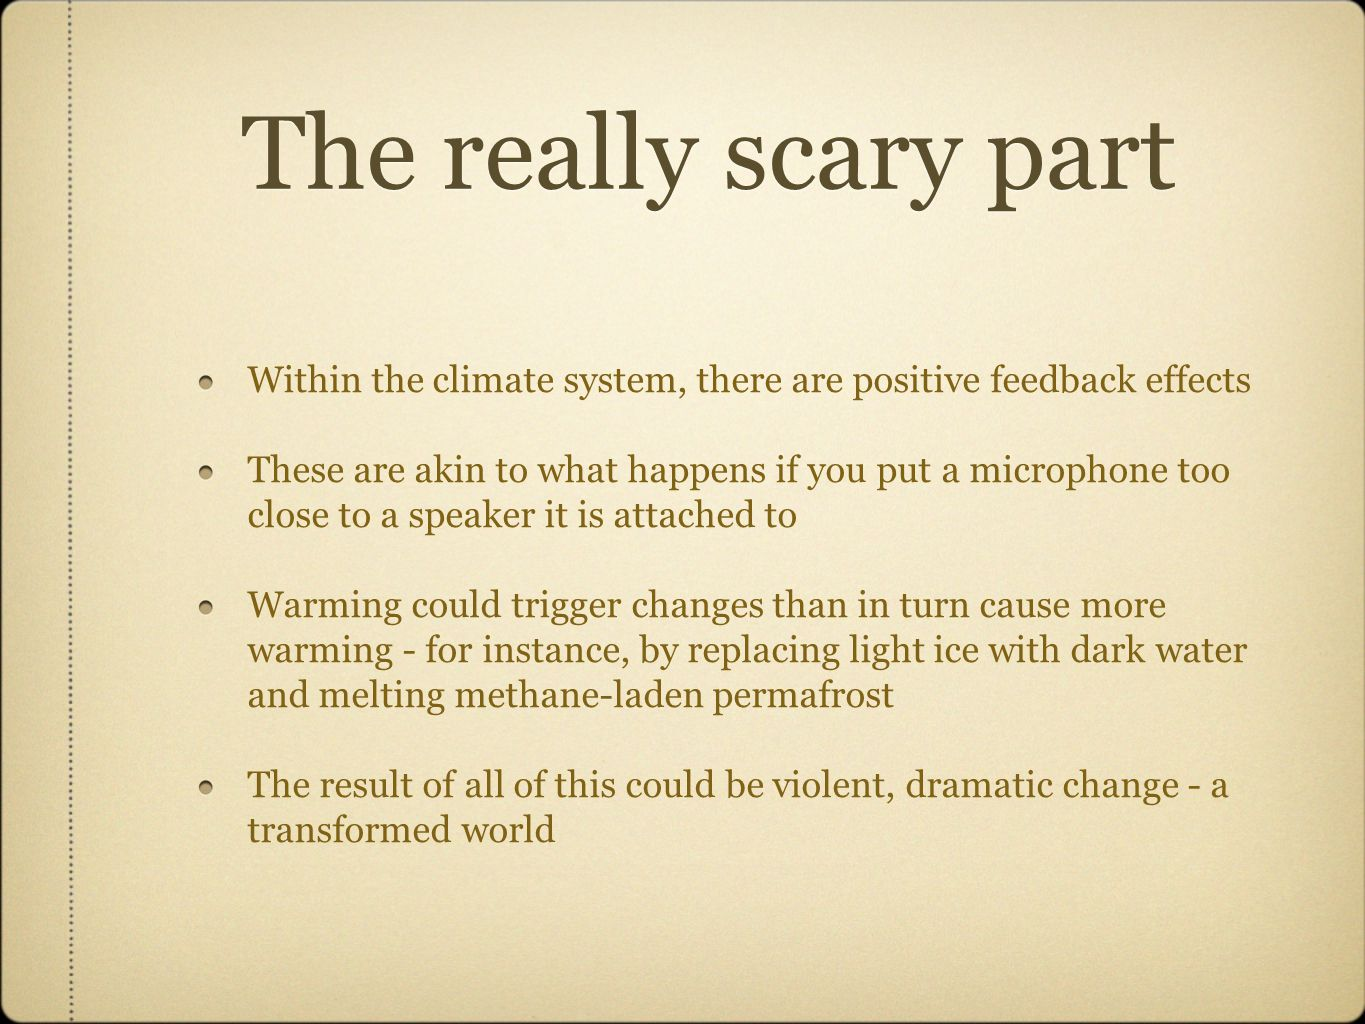 The really scary part Within the climate system, there are positive feedback effects These are akin to what happens if you put a microphone too close to a speaker it is attached to Warming could trigger changes than in turn cause more warming - for instance, by replacing light ice with dark water and melting methane-laden permafrost The result of all of this could be violent, dramatic change - a transformed world